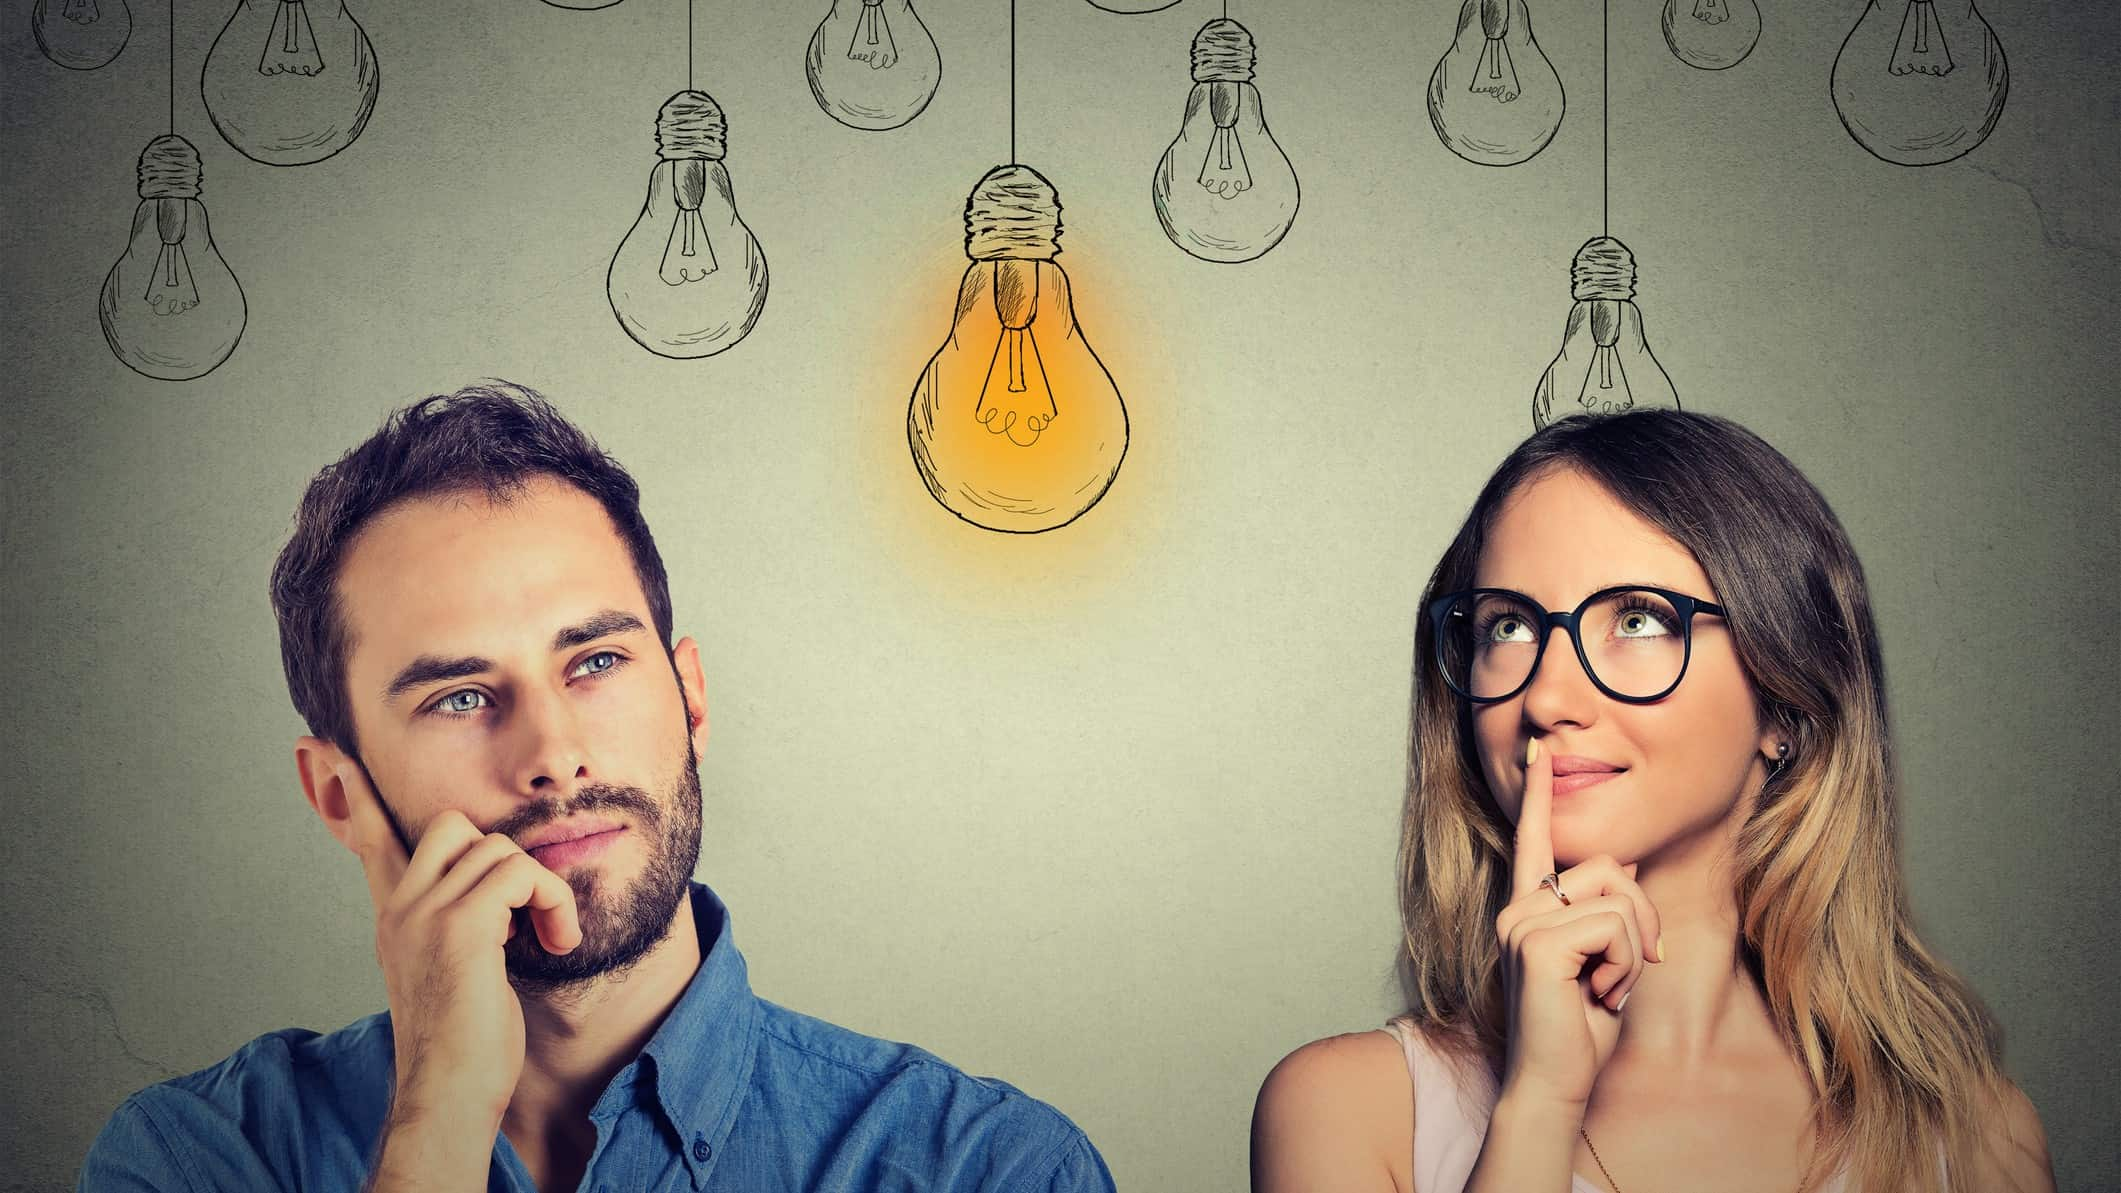 man and woman thinking with picture of lightbulbs